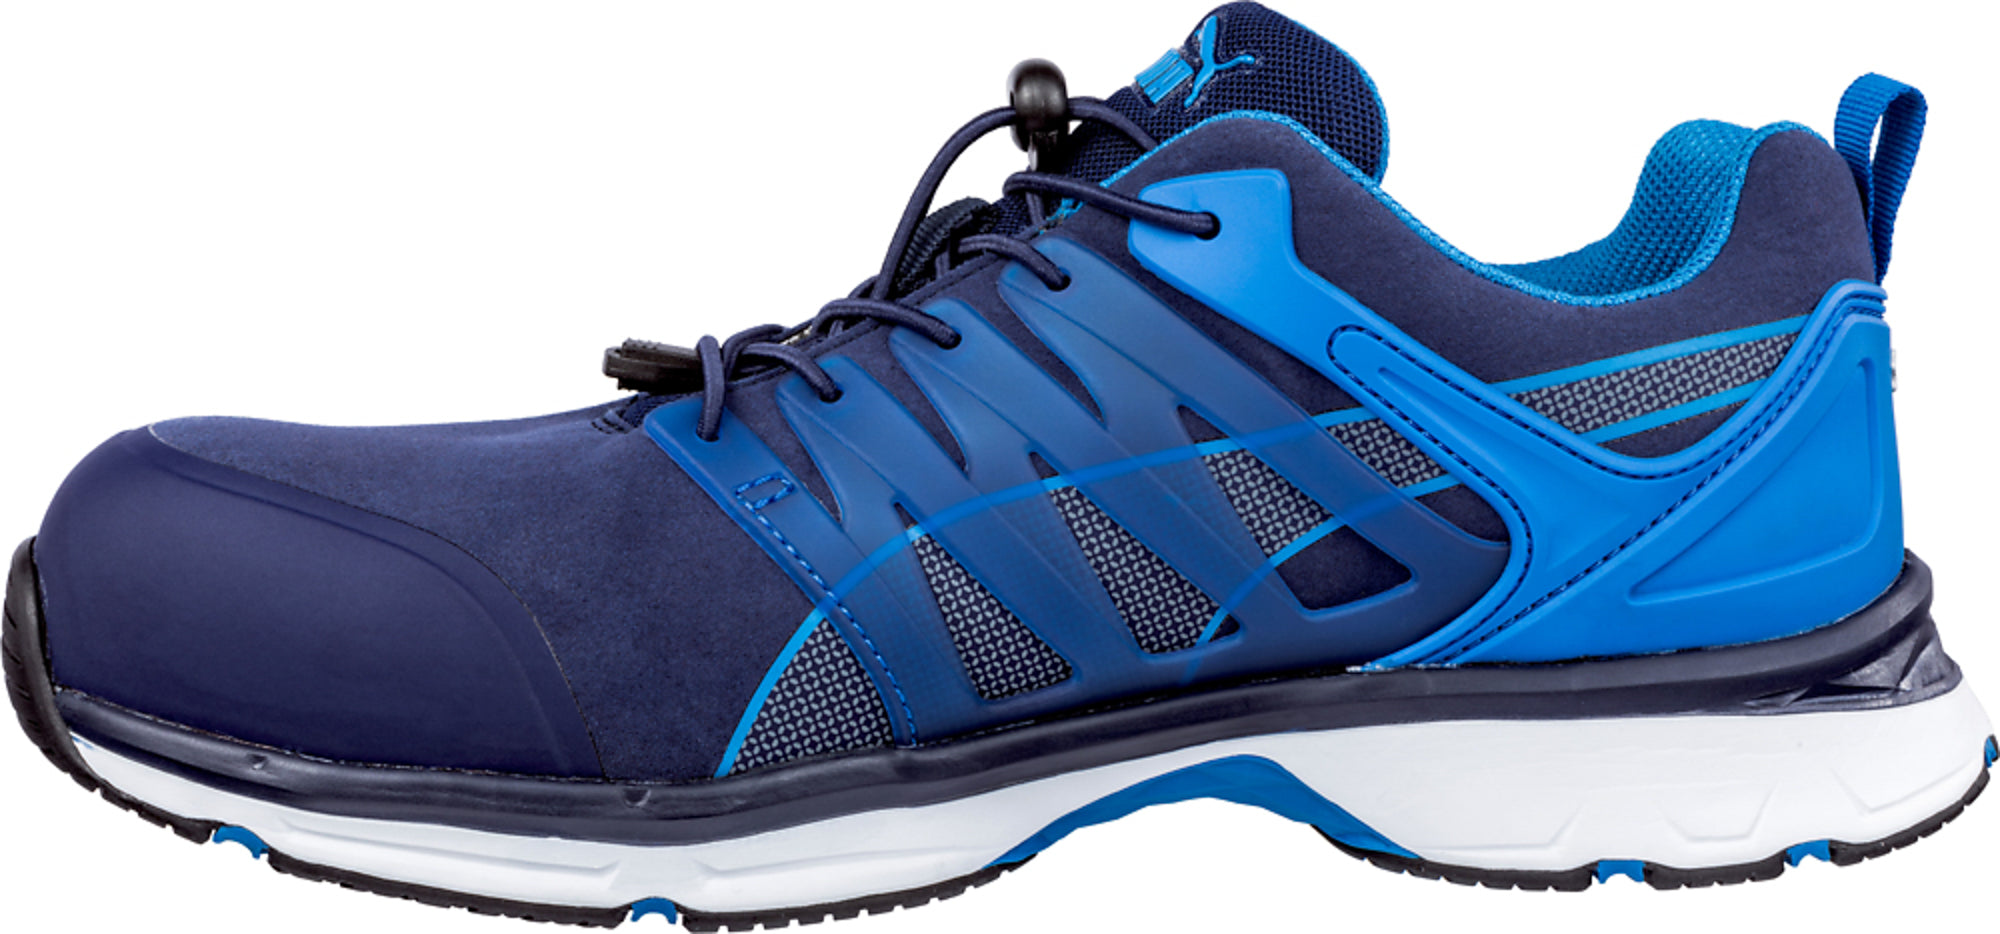 075f58d30dd4e7 ... Puma Safety Blue Mens Microfiber Velocity 2.0 Low SD CT Oxford Work  Shoes ...